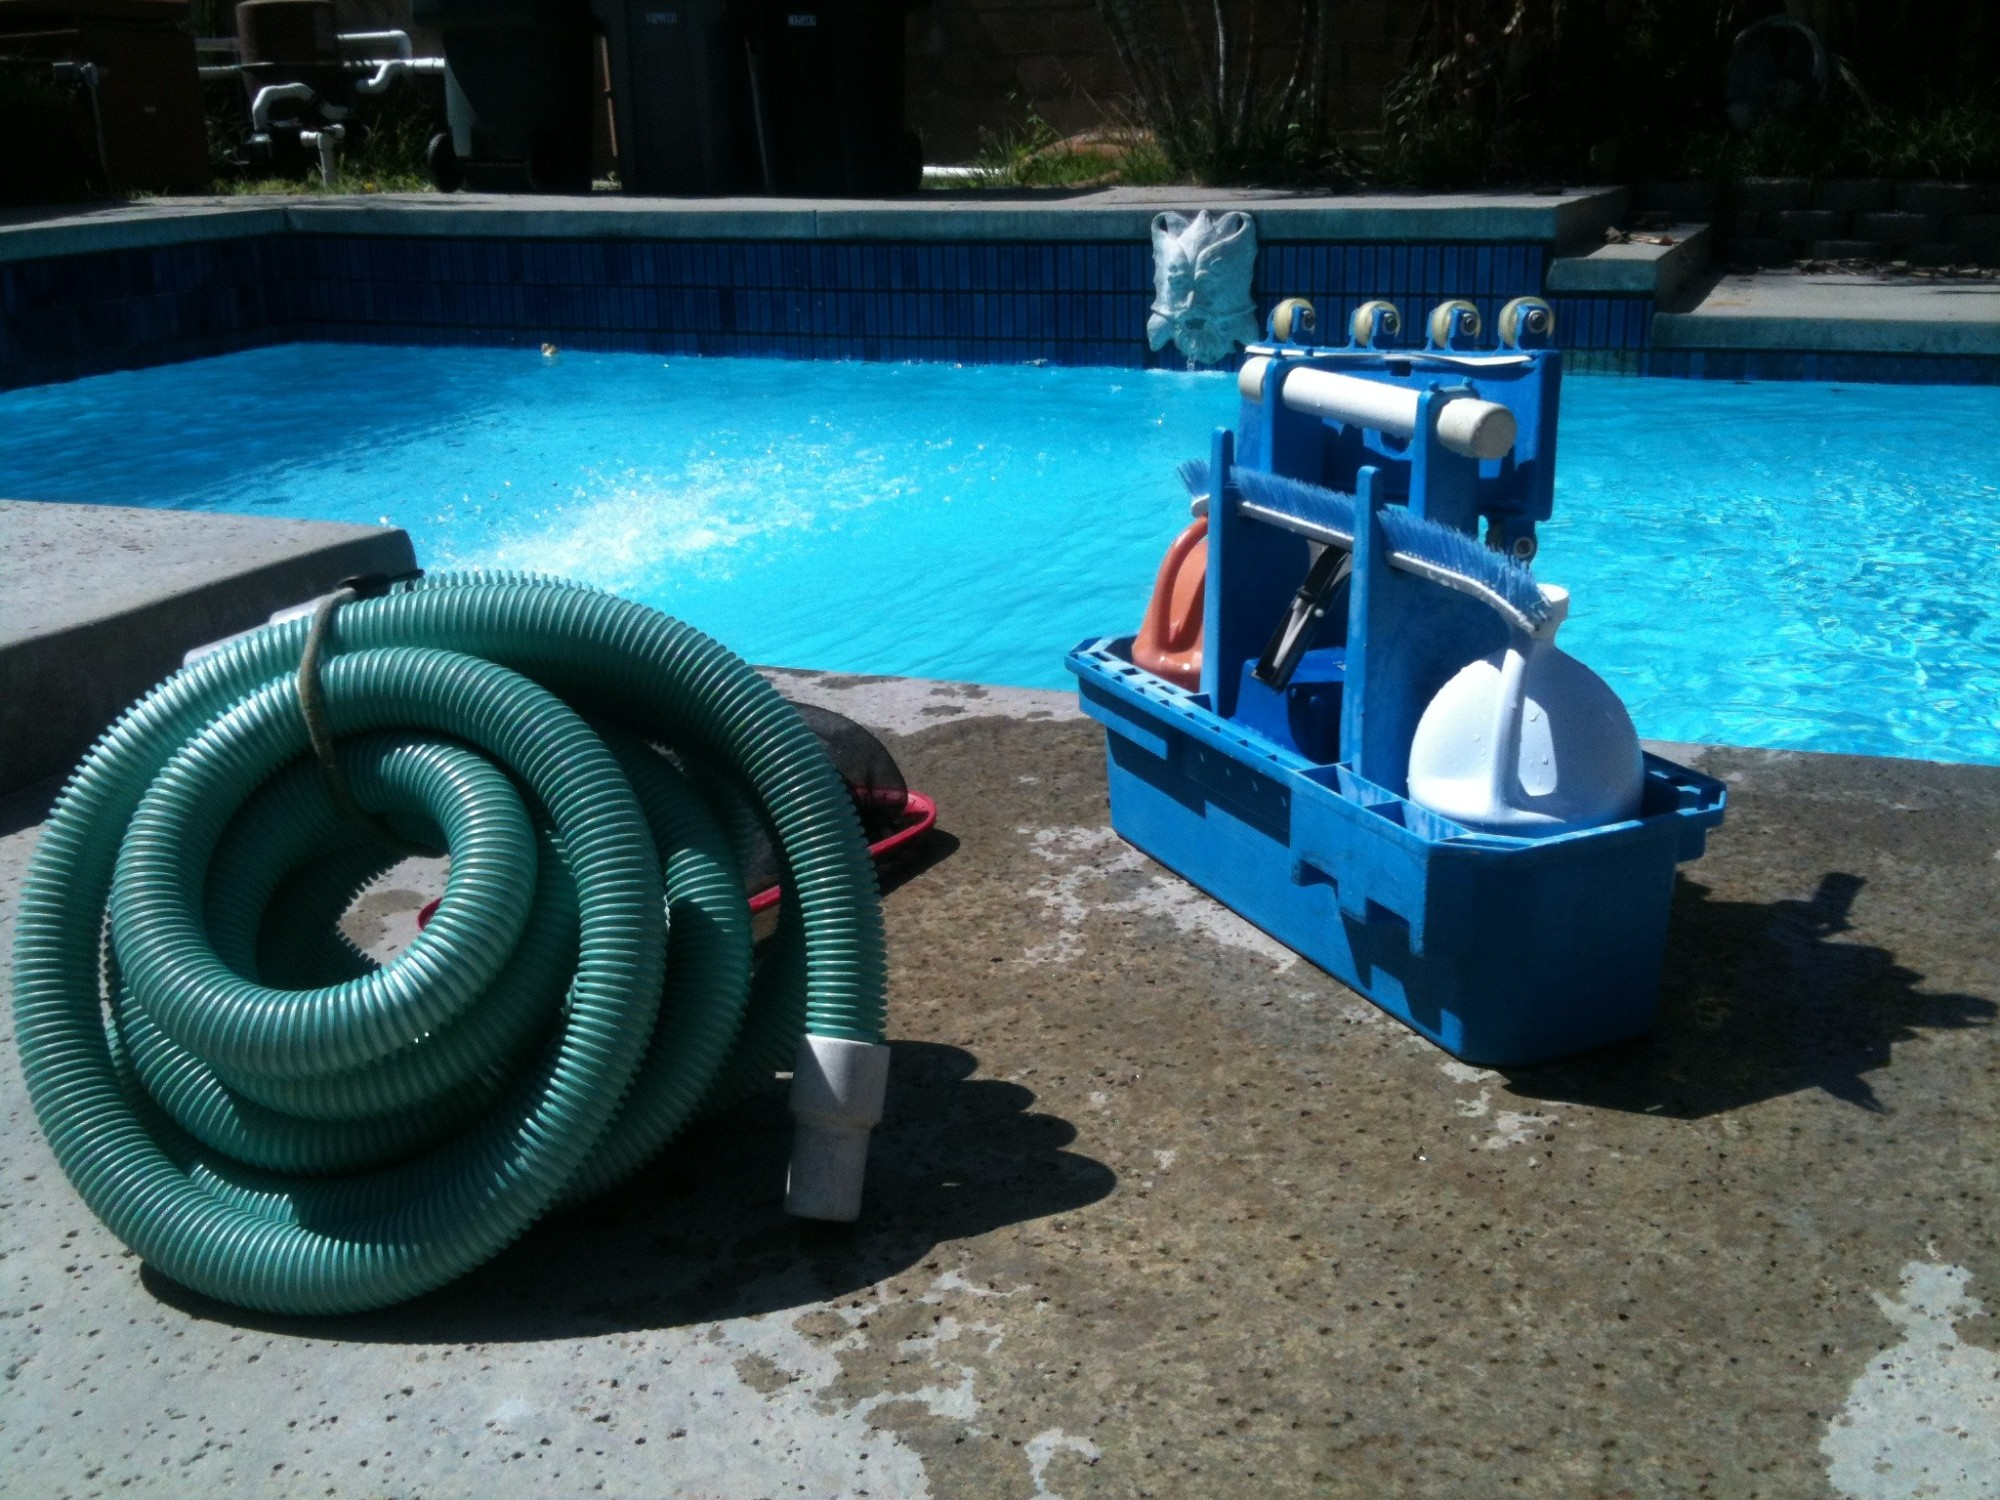 Pool Maintenance: How Often to Change Sand in Pool Filter Systems